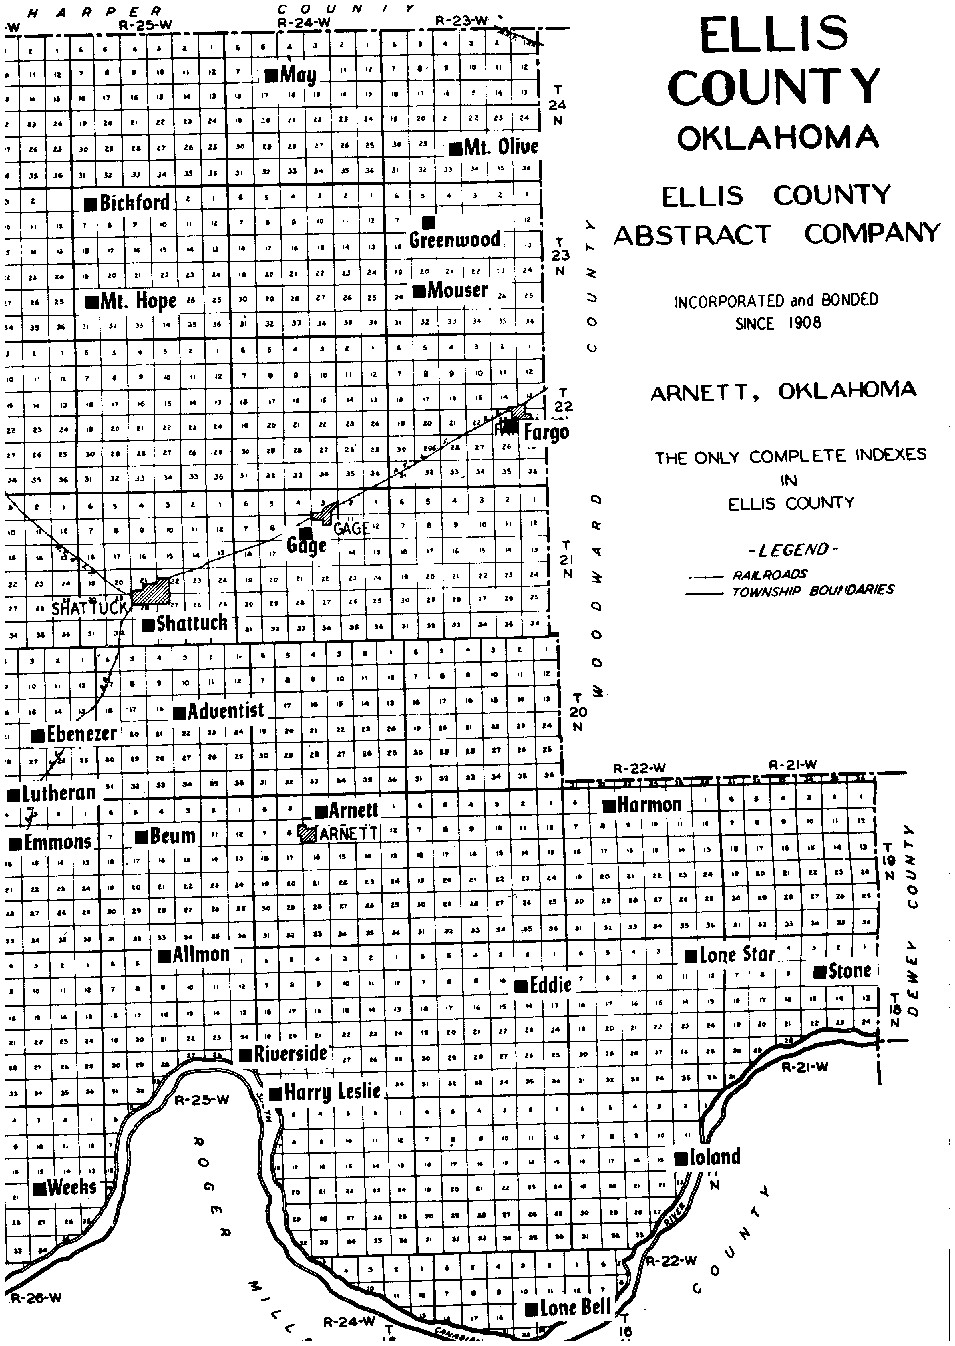 Ellis County Plat Maps